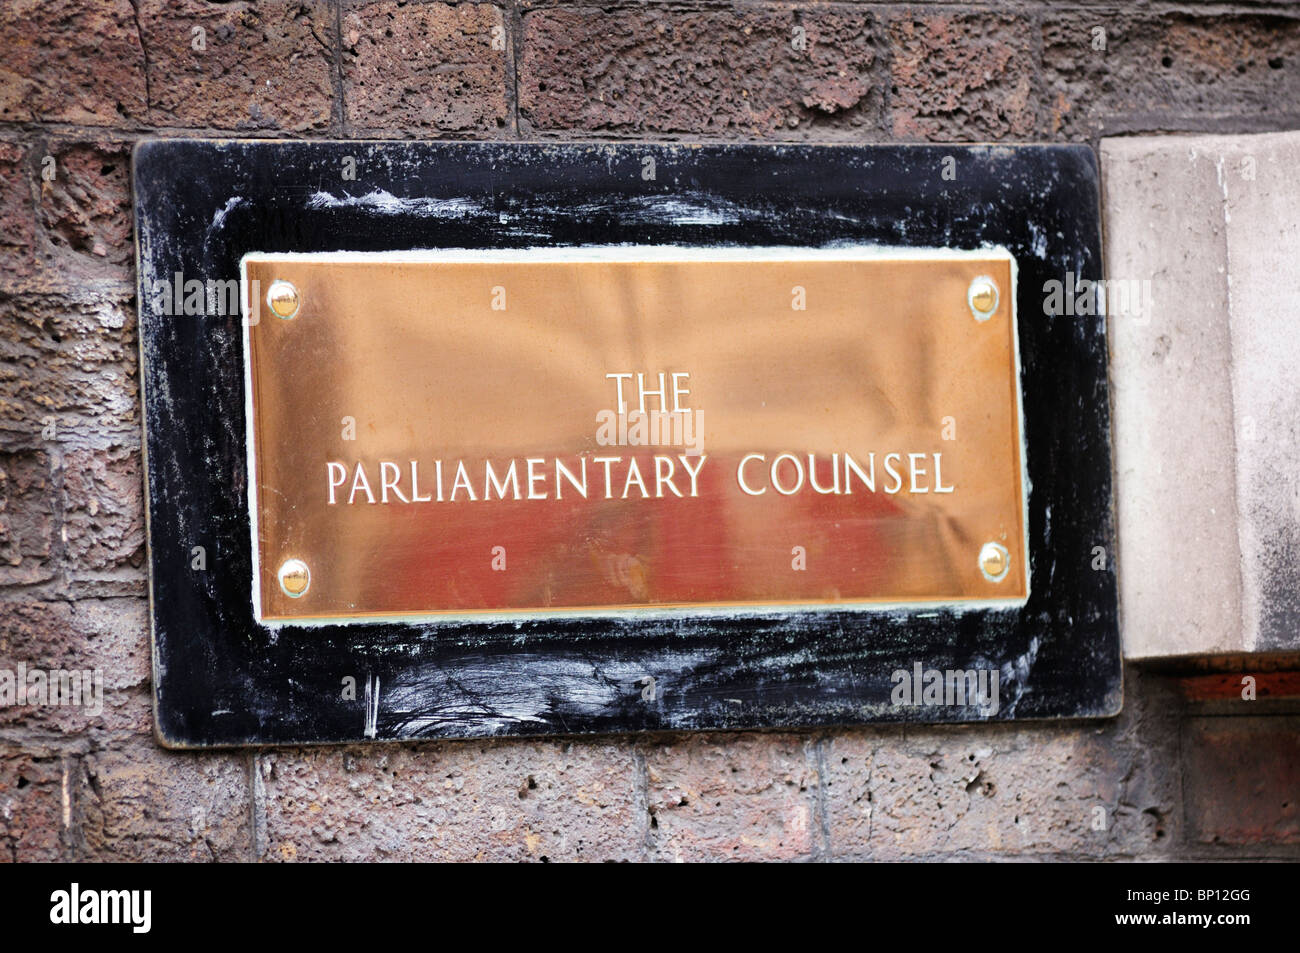 The Parliamentary Counsel Plaque sign, Whitehall, London, England, UK - Stock Image